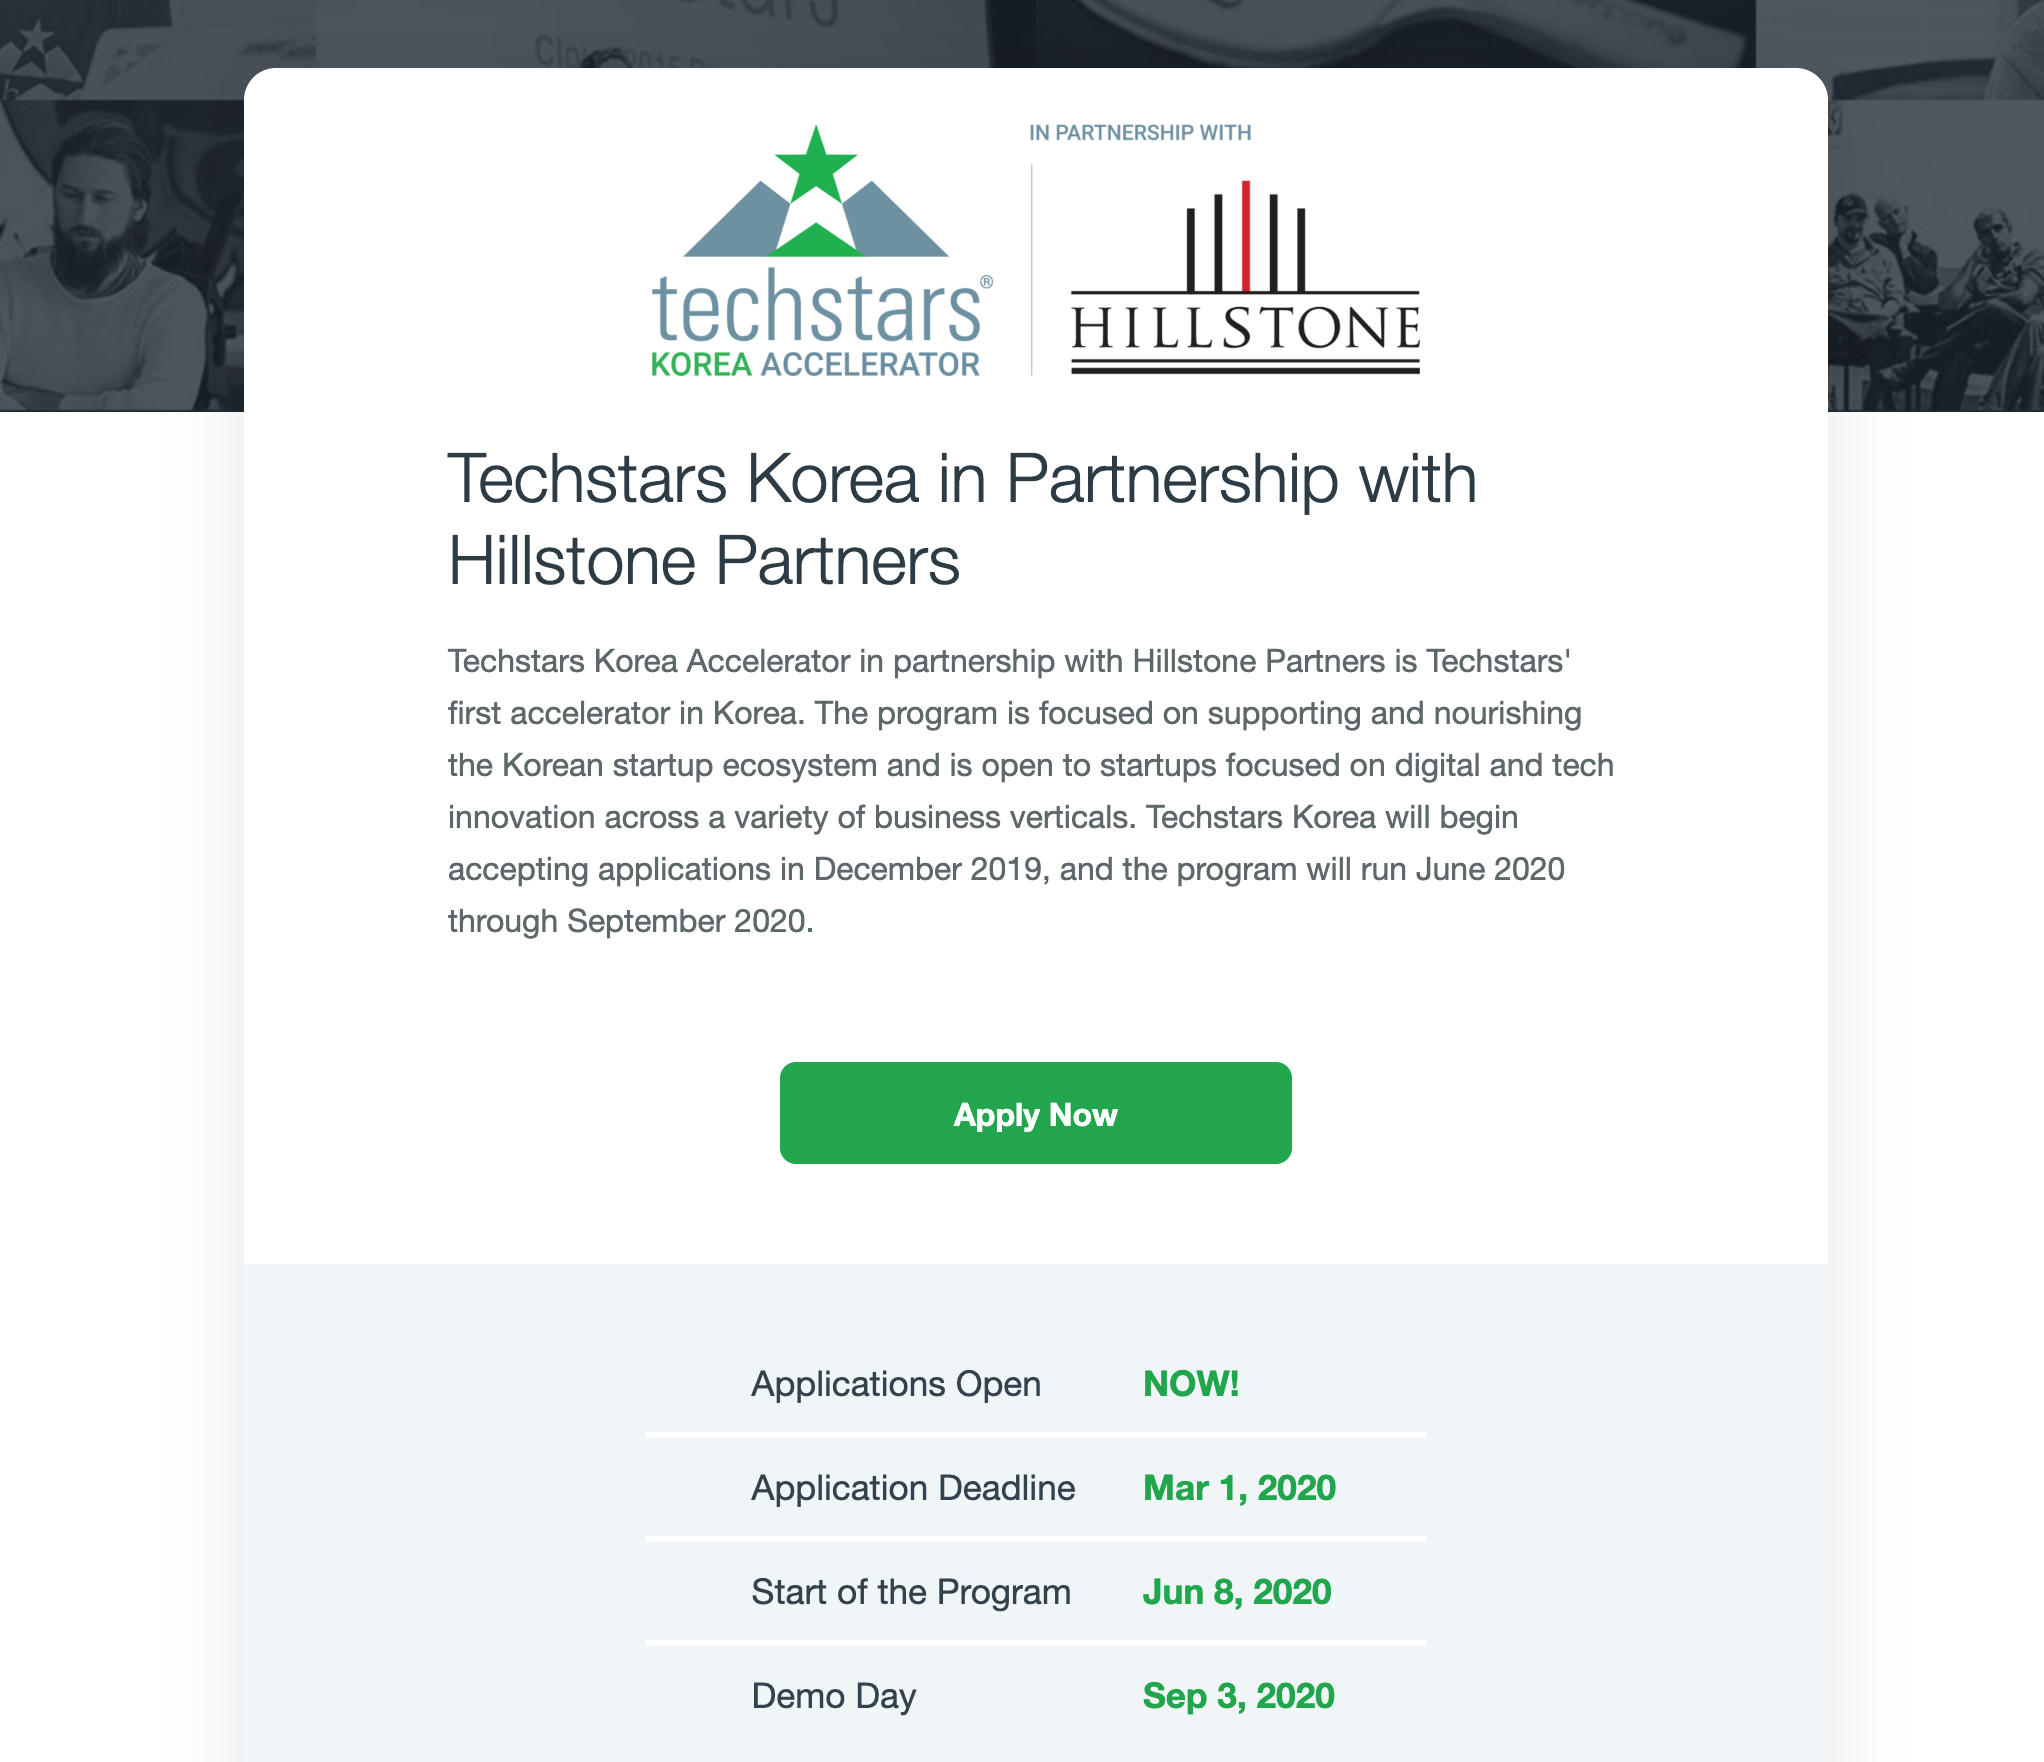 Techstars Korea in Partnership with Hilstone Partners